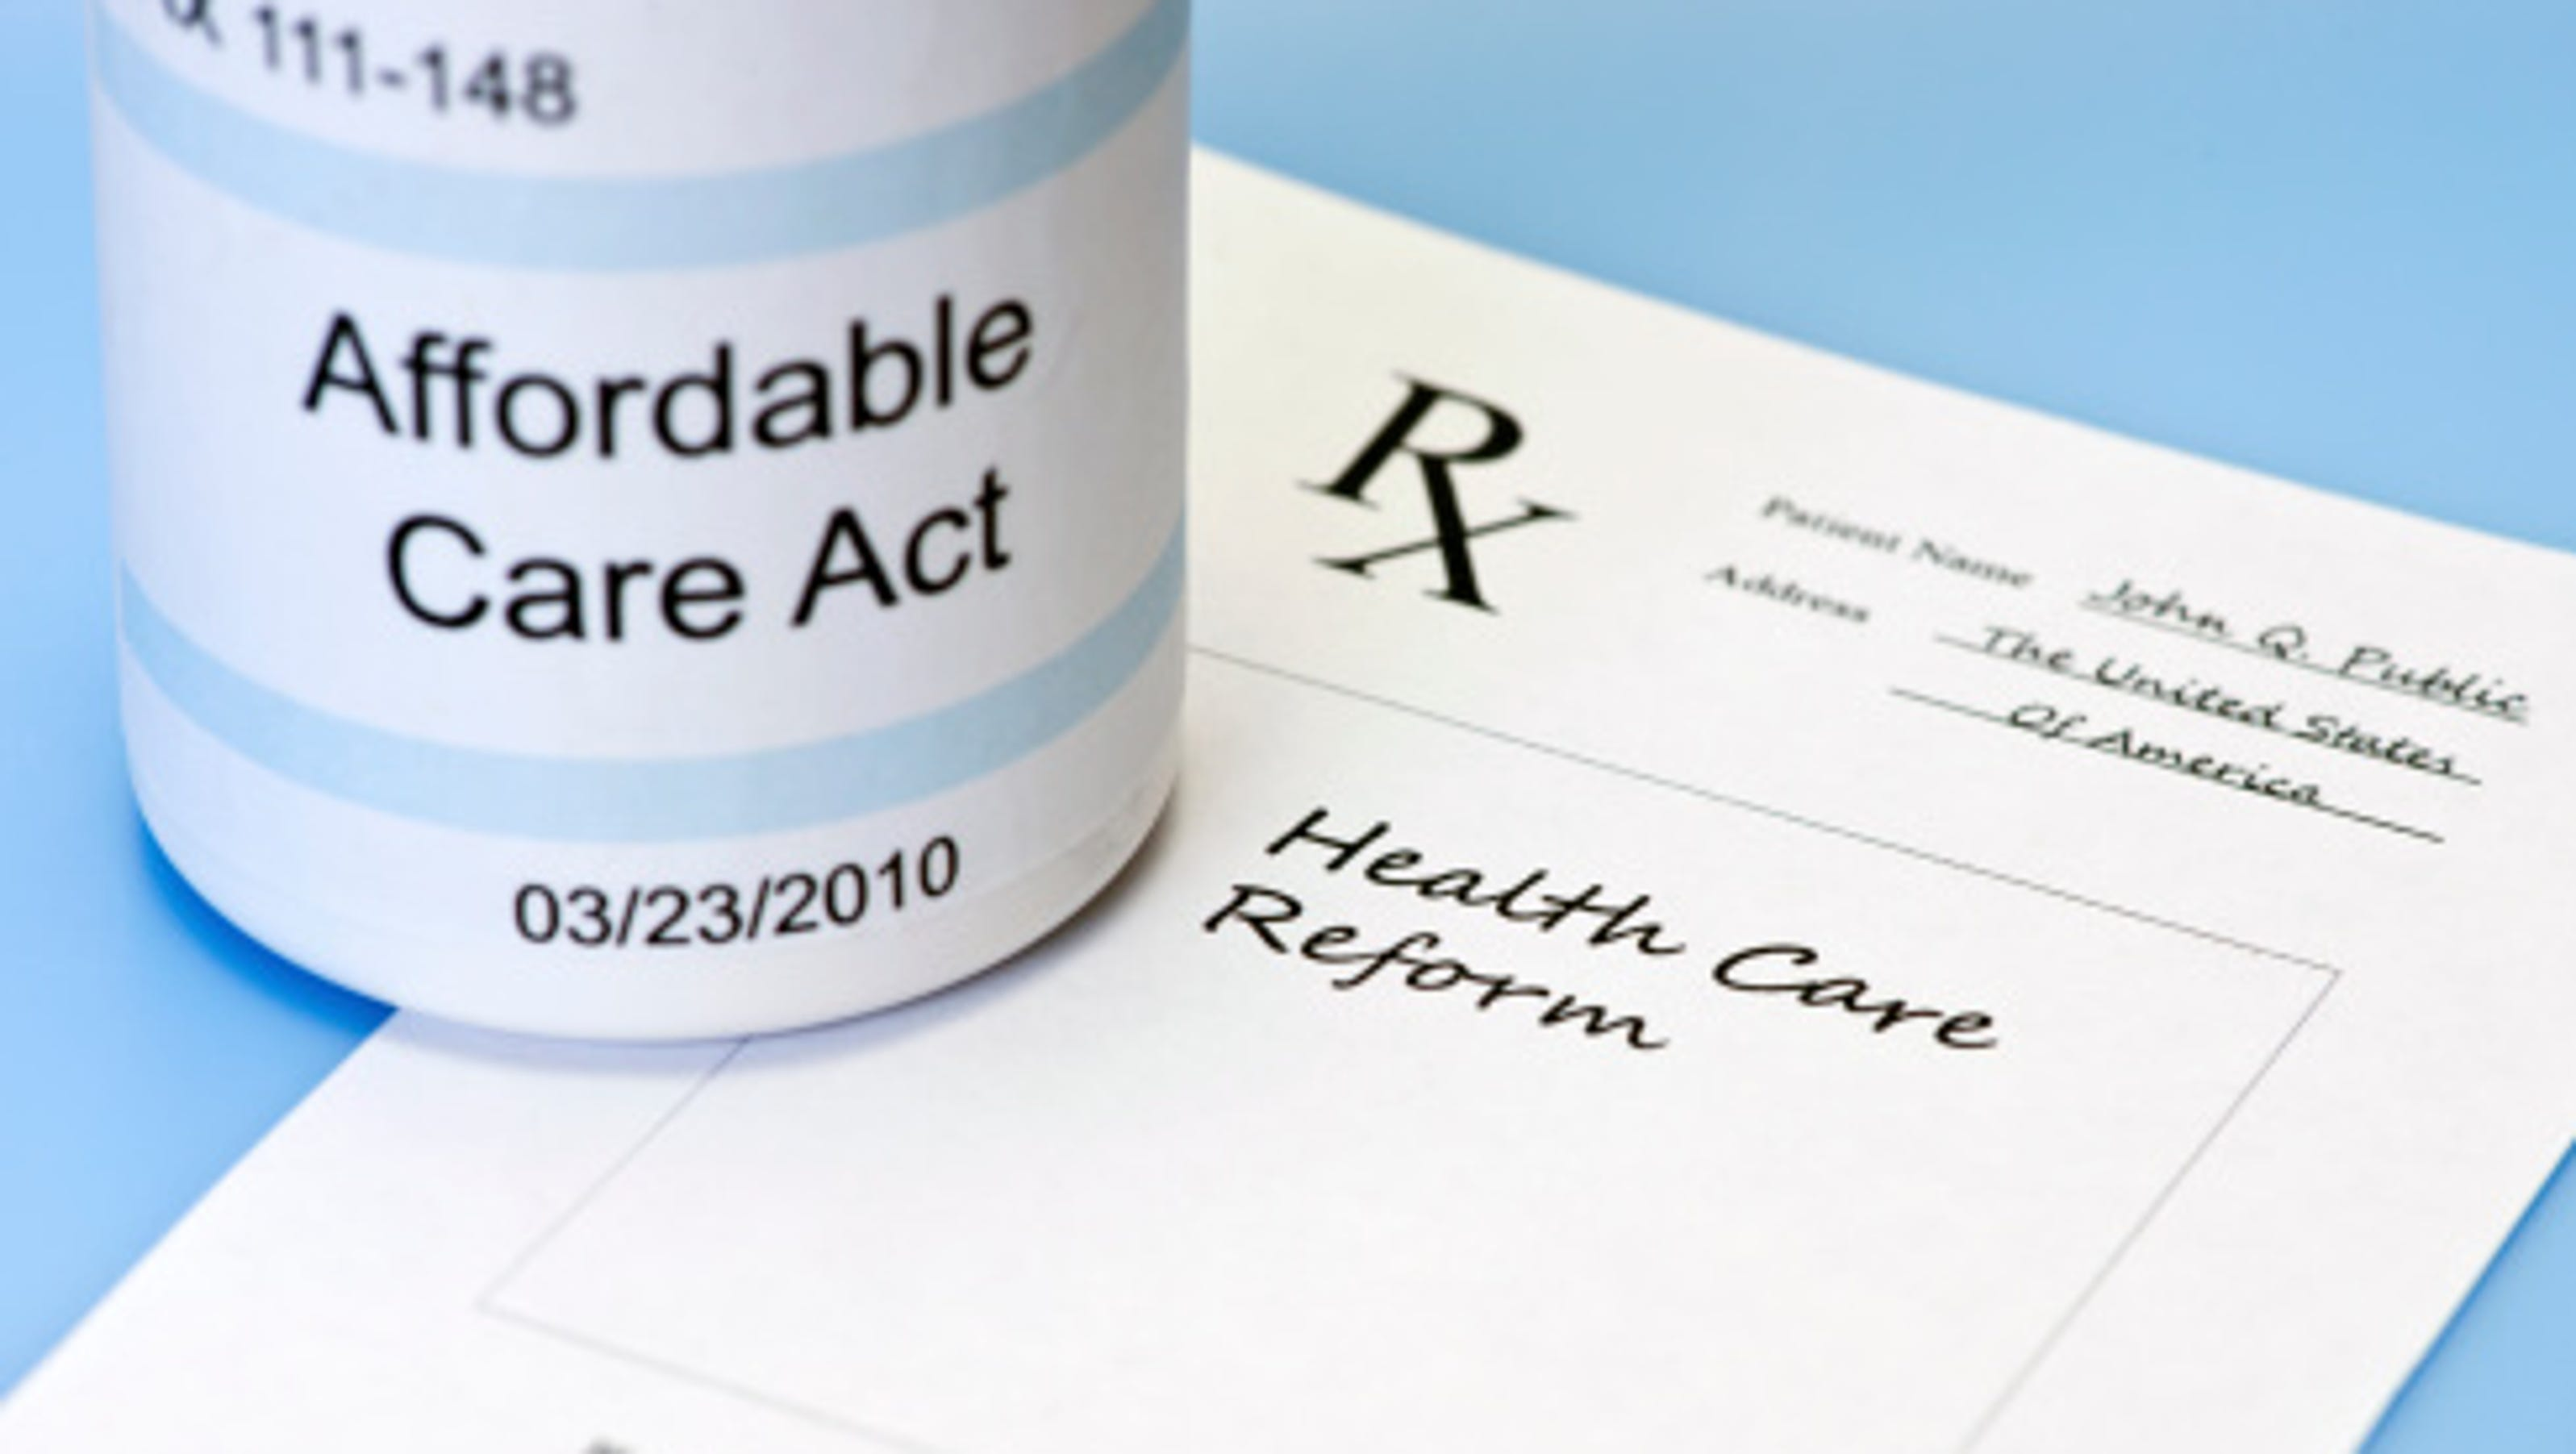 Tax penalty triples for not having health insurance